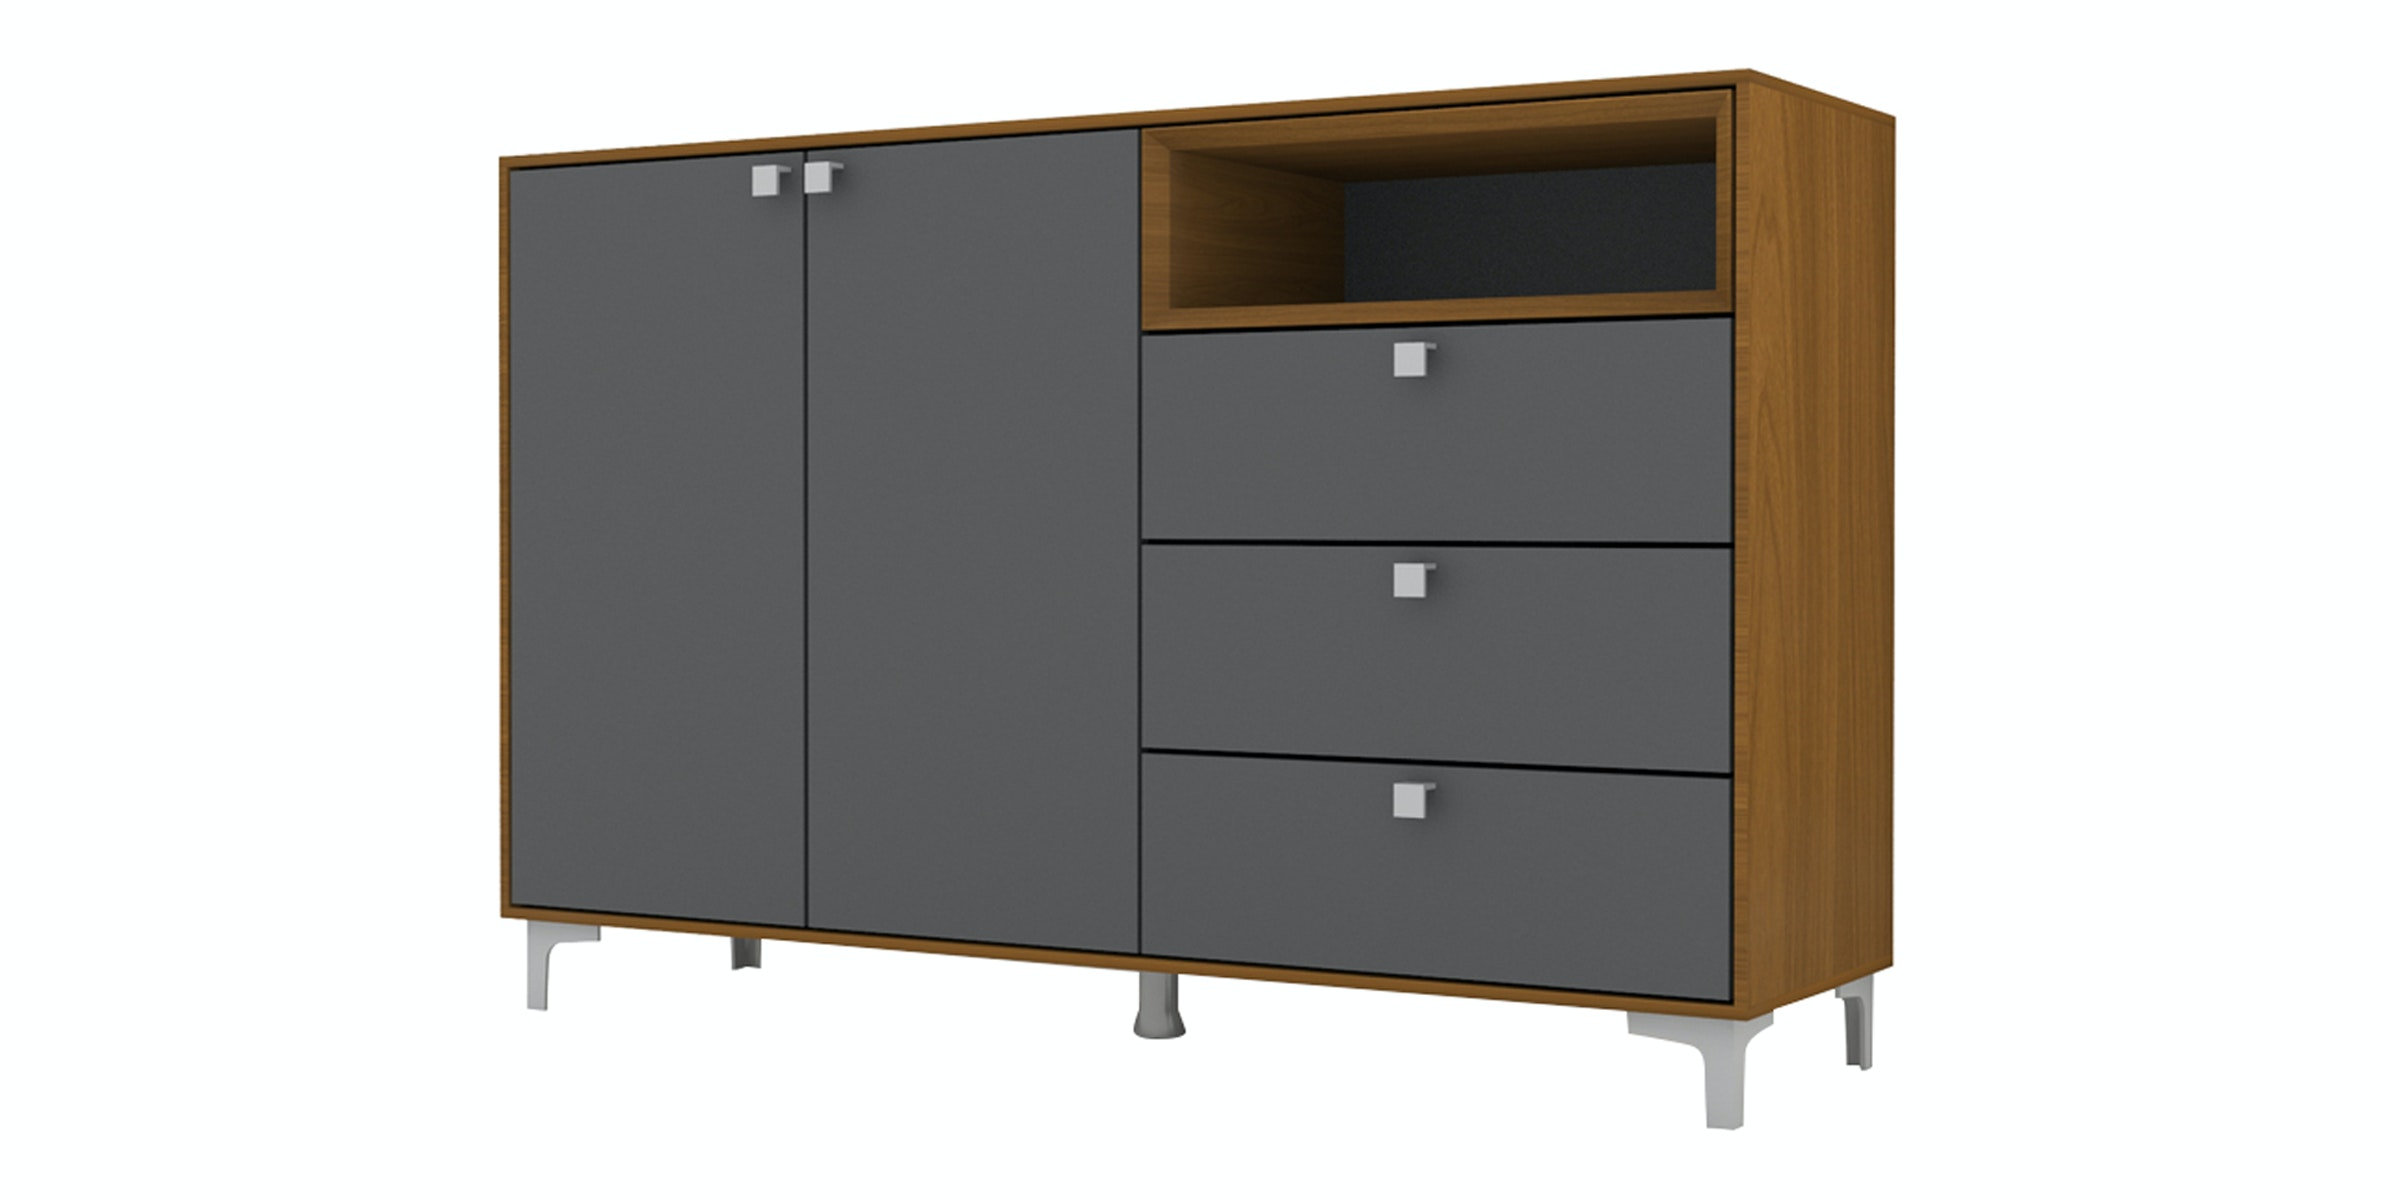 Case Furniture Cabinet Set PCI007-02-00 Rosewood - Dark Grey